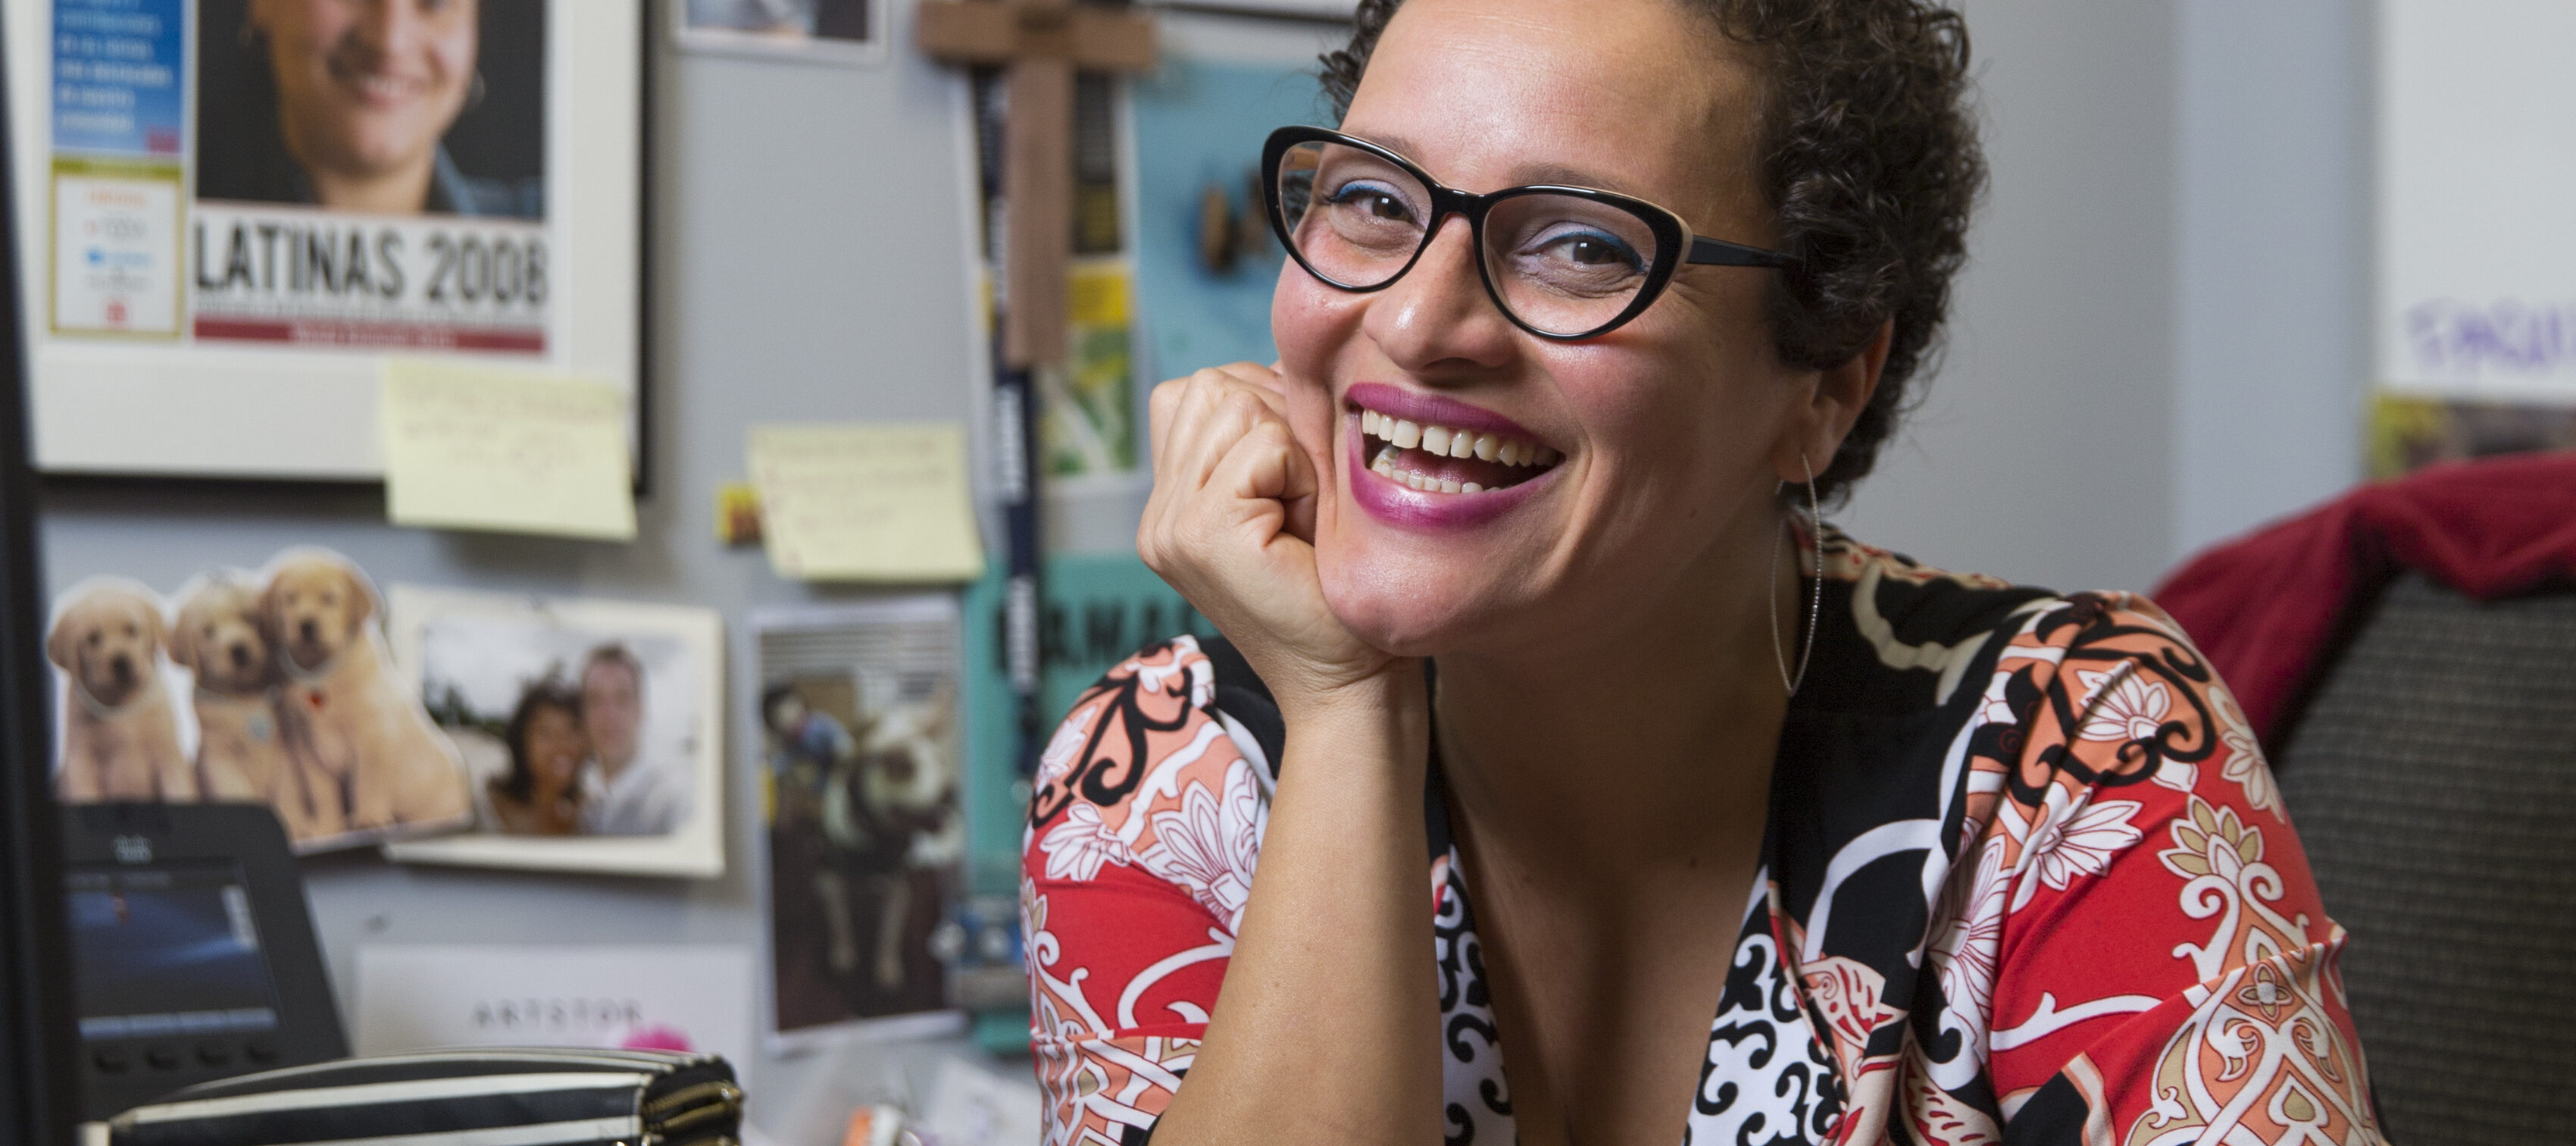 A olive-skinned woman smiles brightly, seemingly mid-laugh, as she sits at an office desk, her right hand placed beneath her chin. Her brown curly hair is worn in a cropped pixie cut and she wears cat-eye glasses. In front of her is a closed Apple laptop; the wall behind her holds two framed certificates or degrees, a framed newspaper, a wooden cross, and other pasted photos.